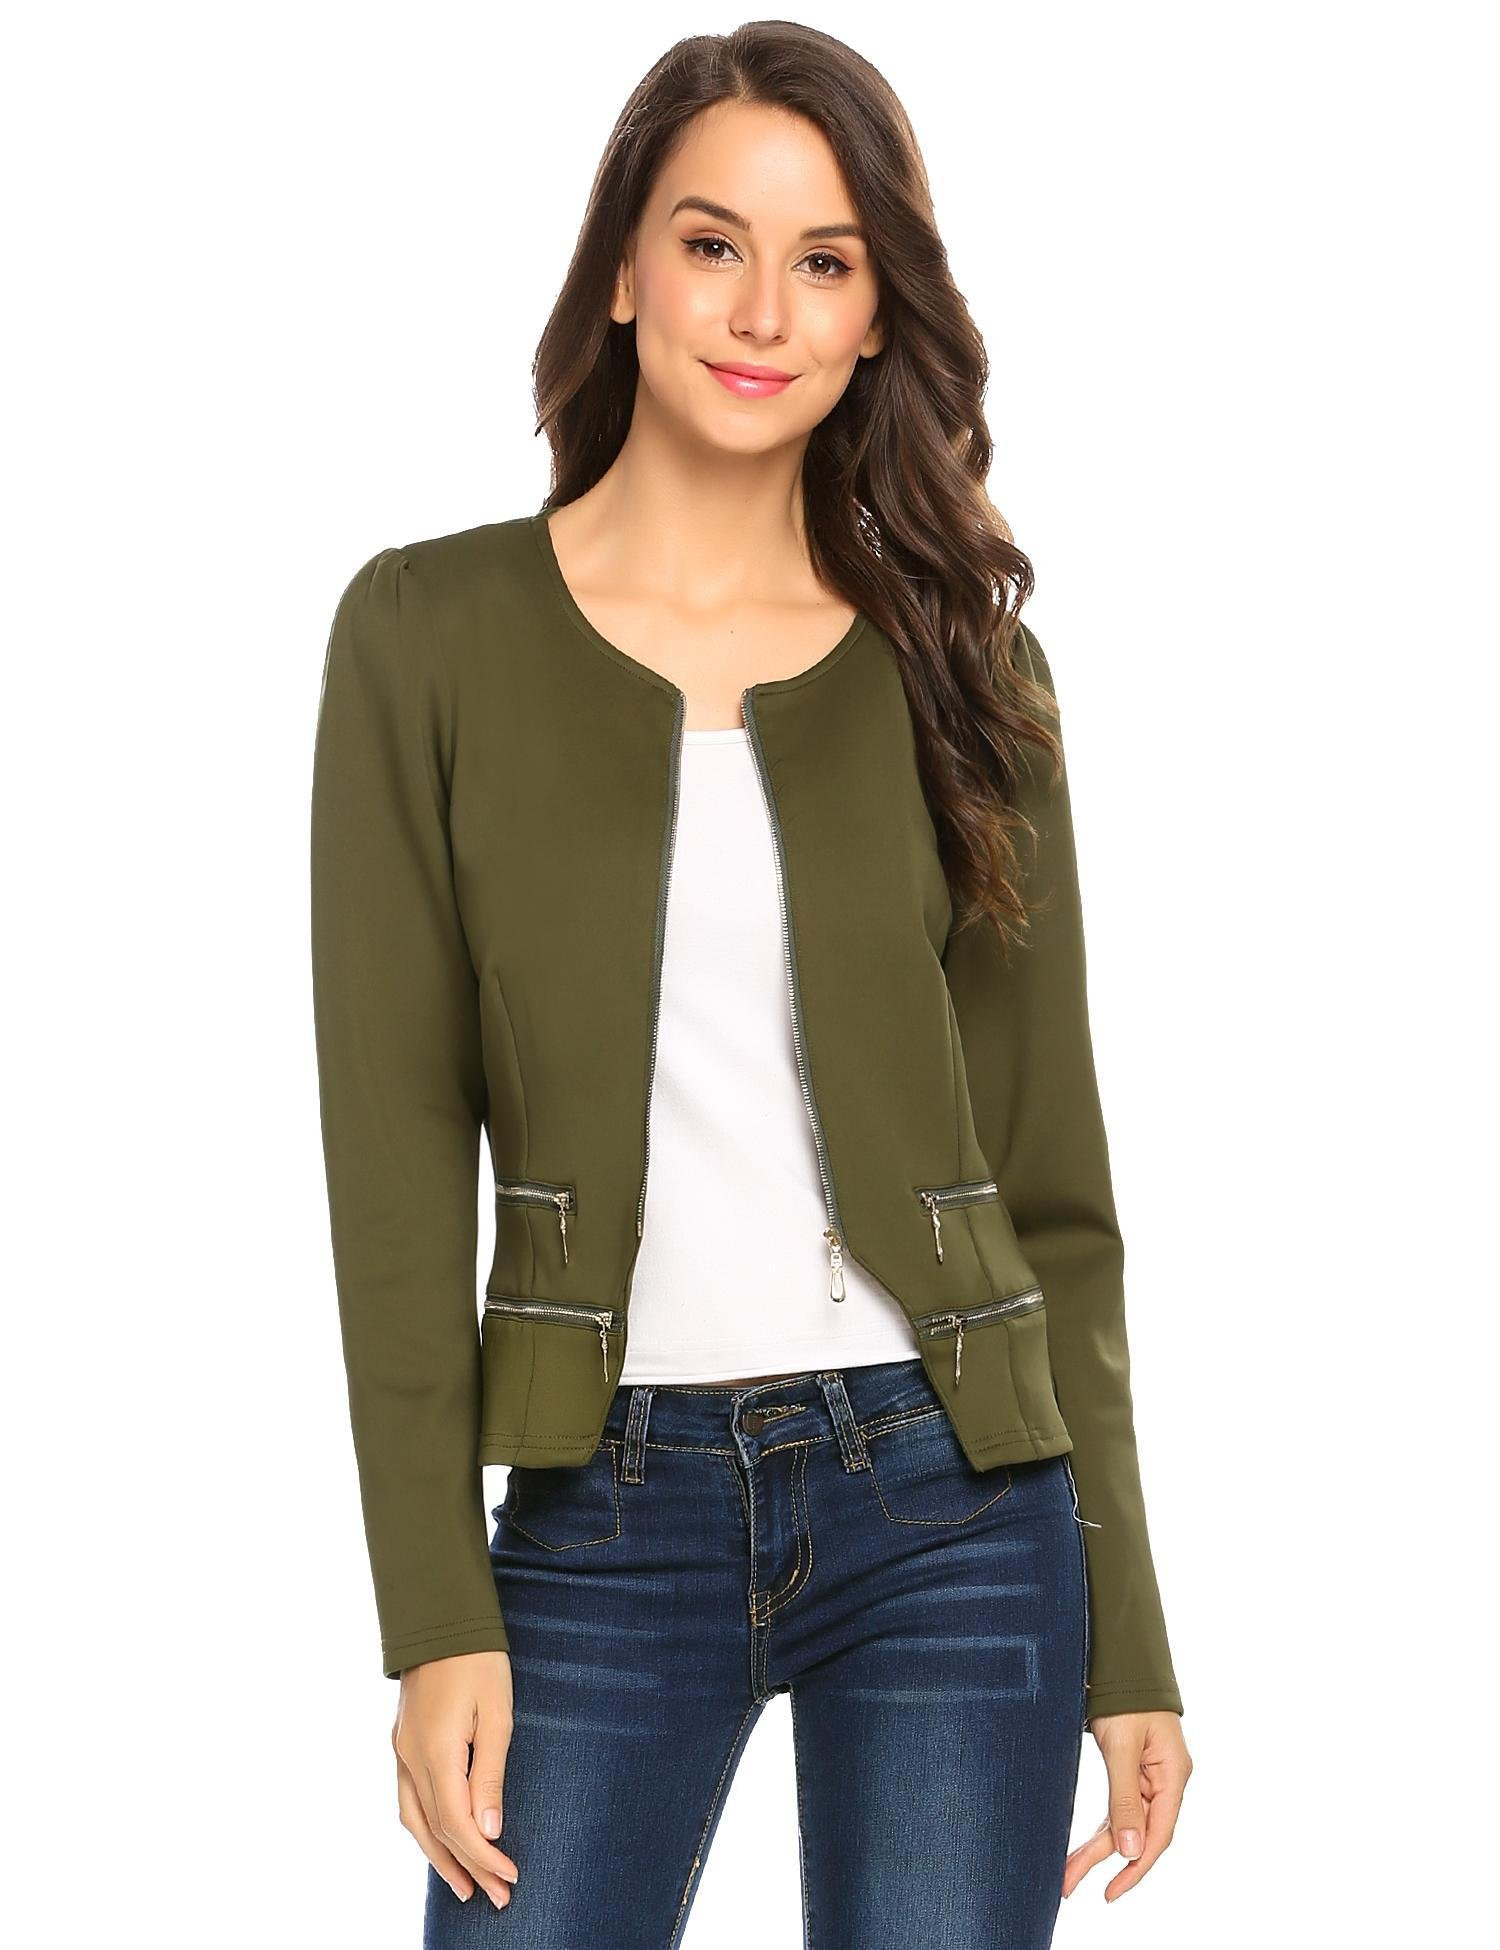 Zeagoo Women's Casual Zipper Cardigan Blazer O Neck Slim Fitted Office Jacket (L, Army Green)